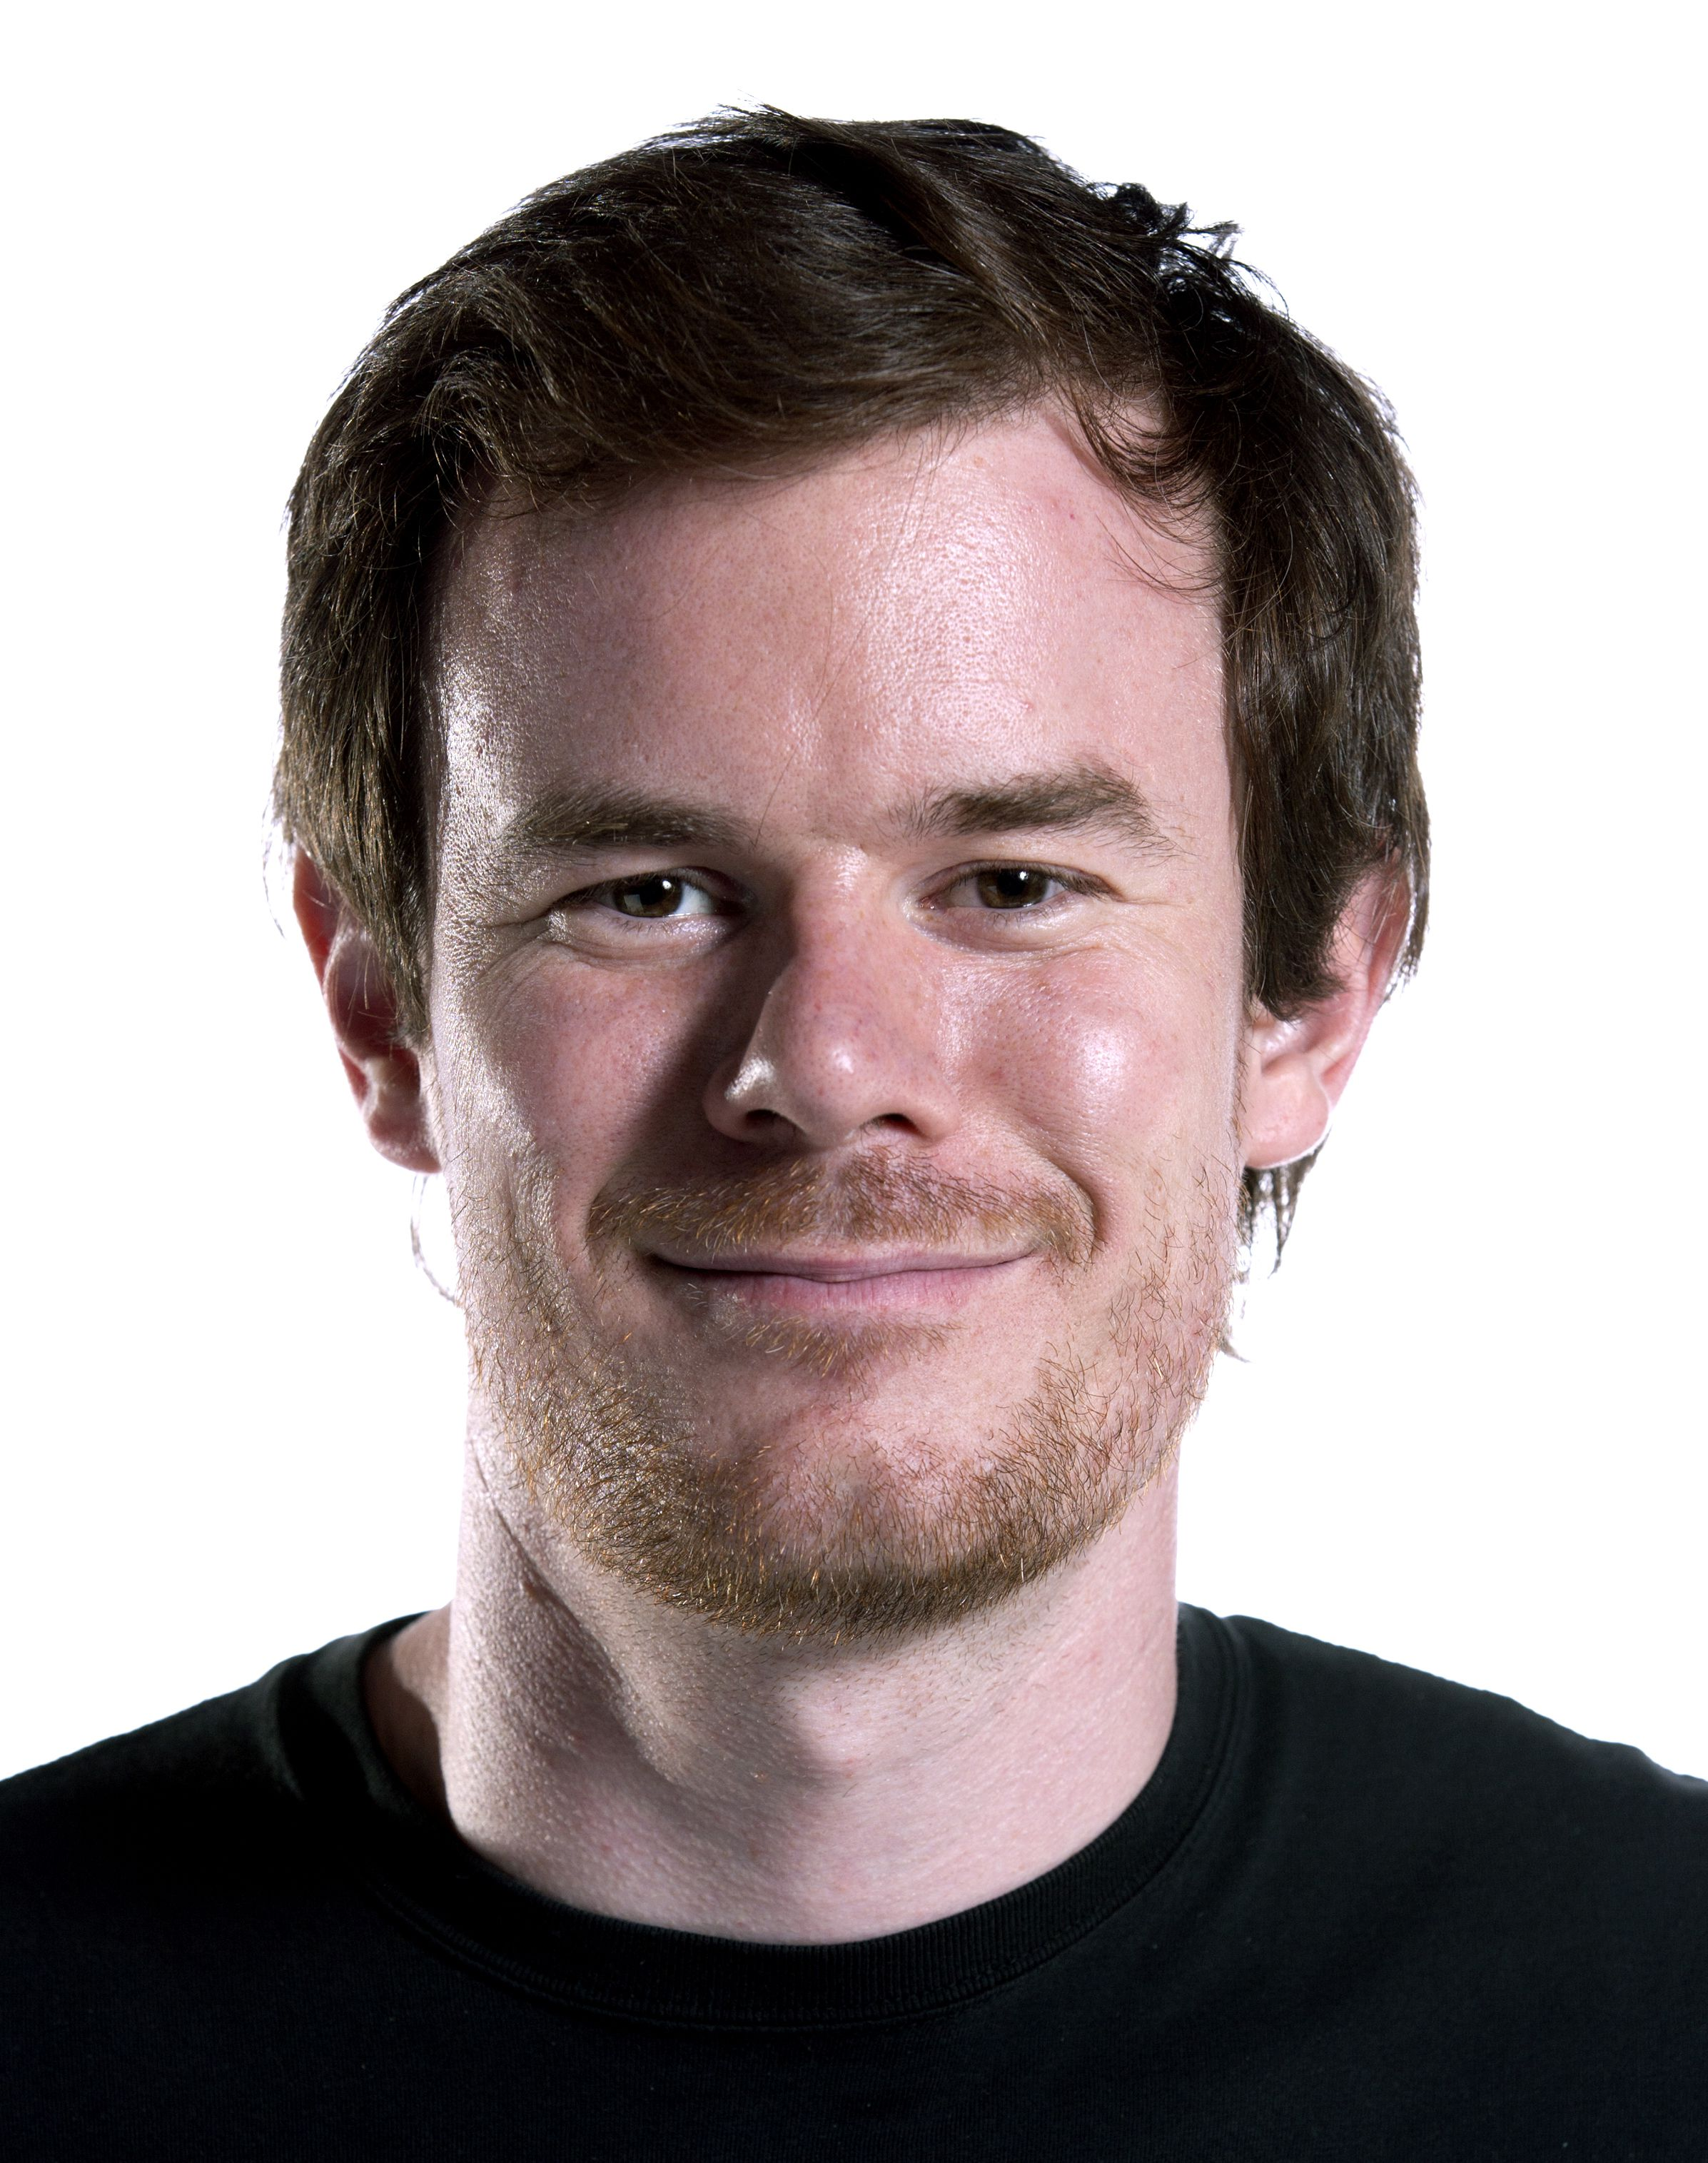 Interview Joe Swanberg On Drinking Buddies Bigger Budgets And More Slant Magazine